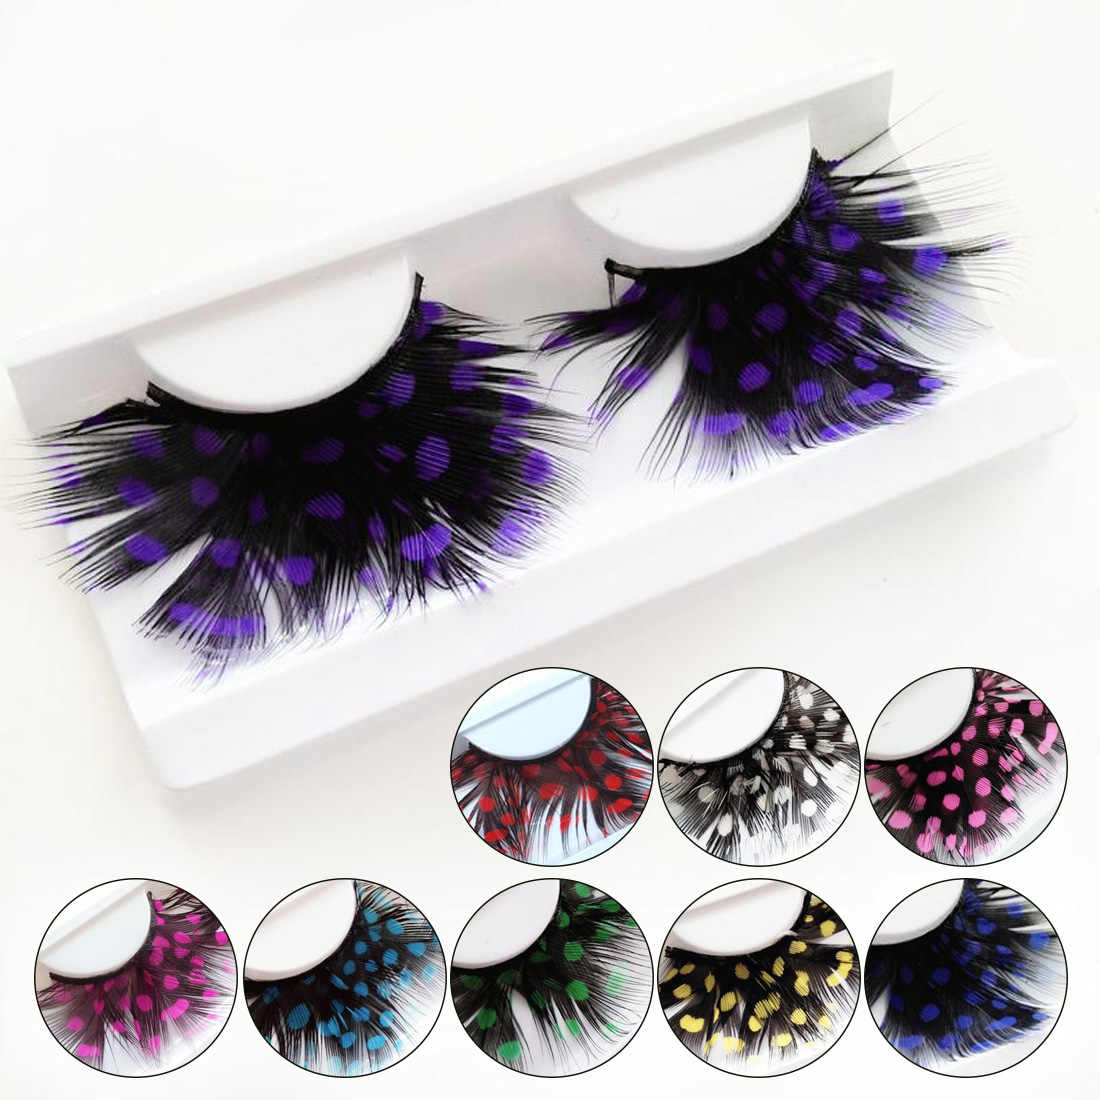 1 Pair Feather Dot False Eyelashes Party Nightclub Makeup Eye Lash Halloween Xmas Show Masquerade Natural Colorful 9 COLORS